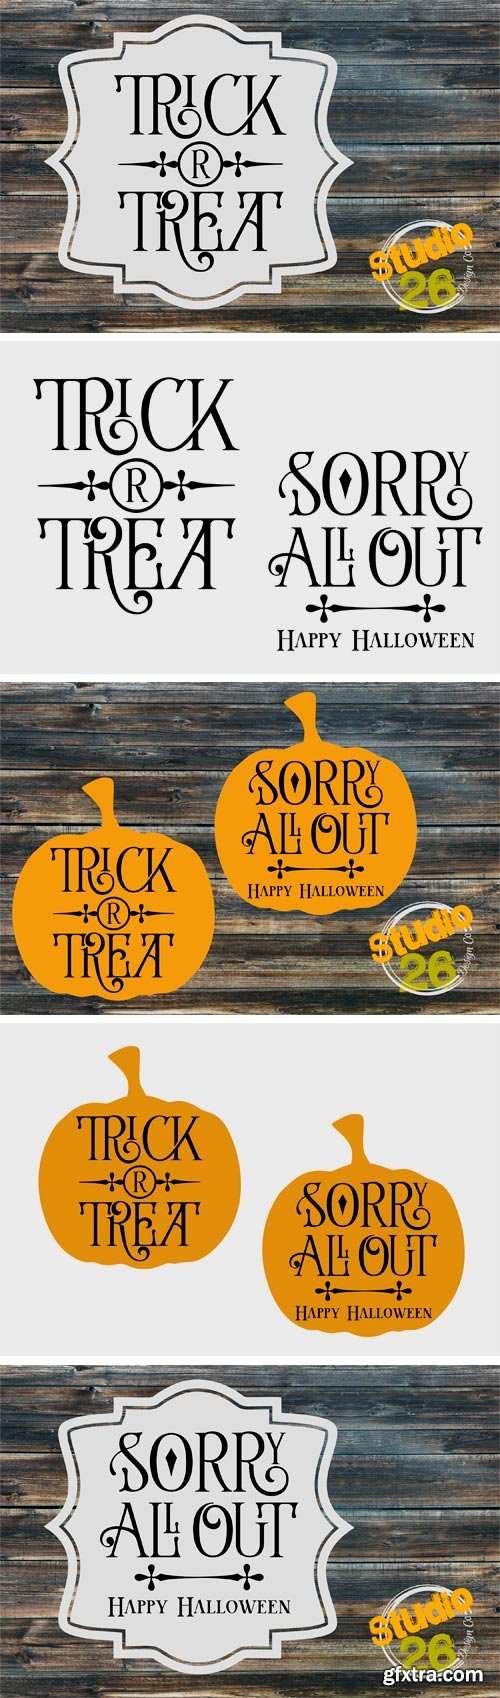 Designbundles - Trick or Treat - All Out - Halloween 141750